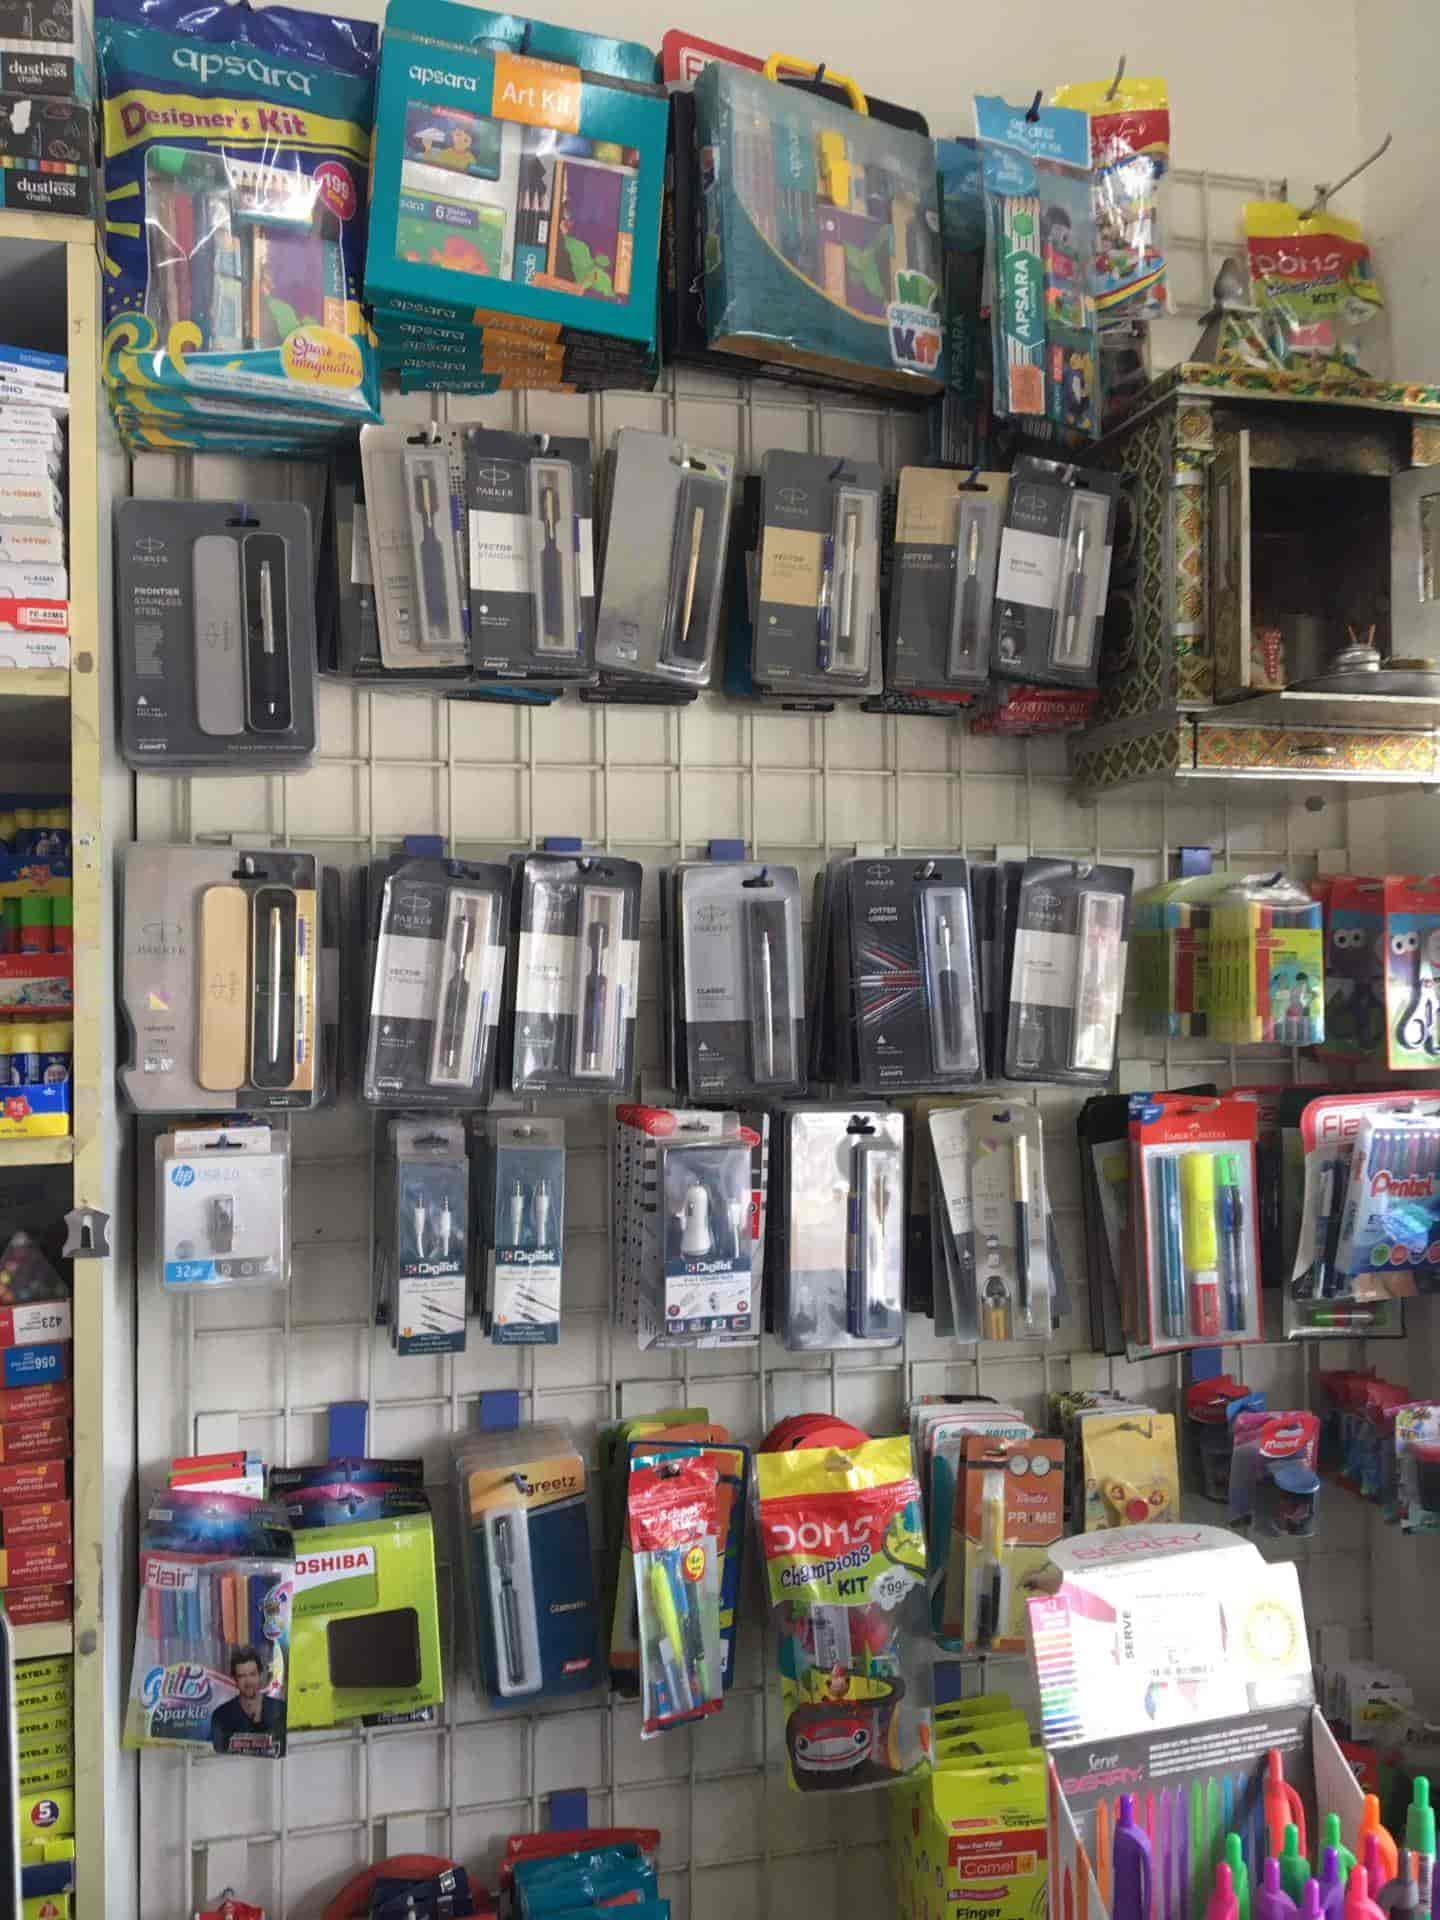 Welcome Stationery & Print, Bhaili - Stationery Shops in